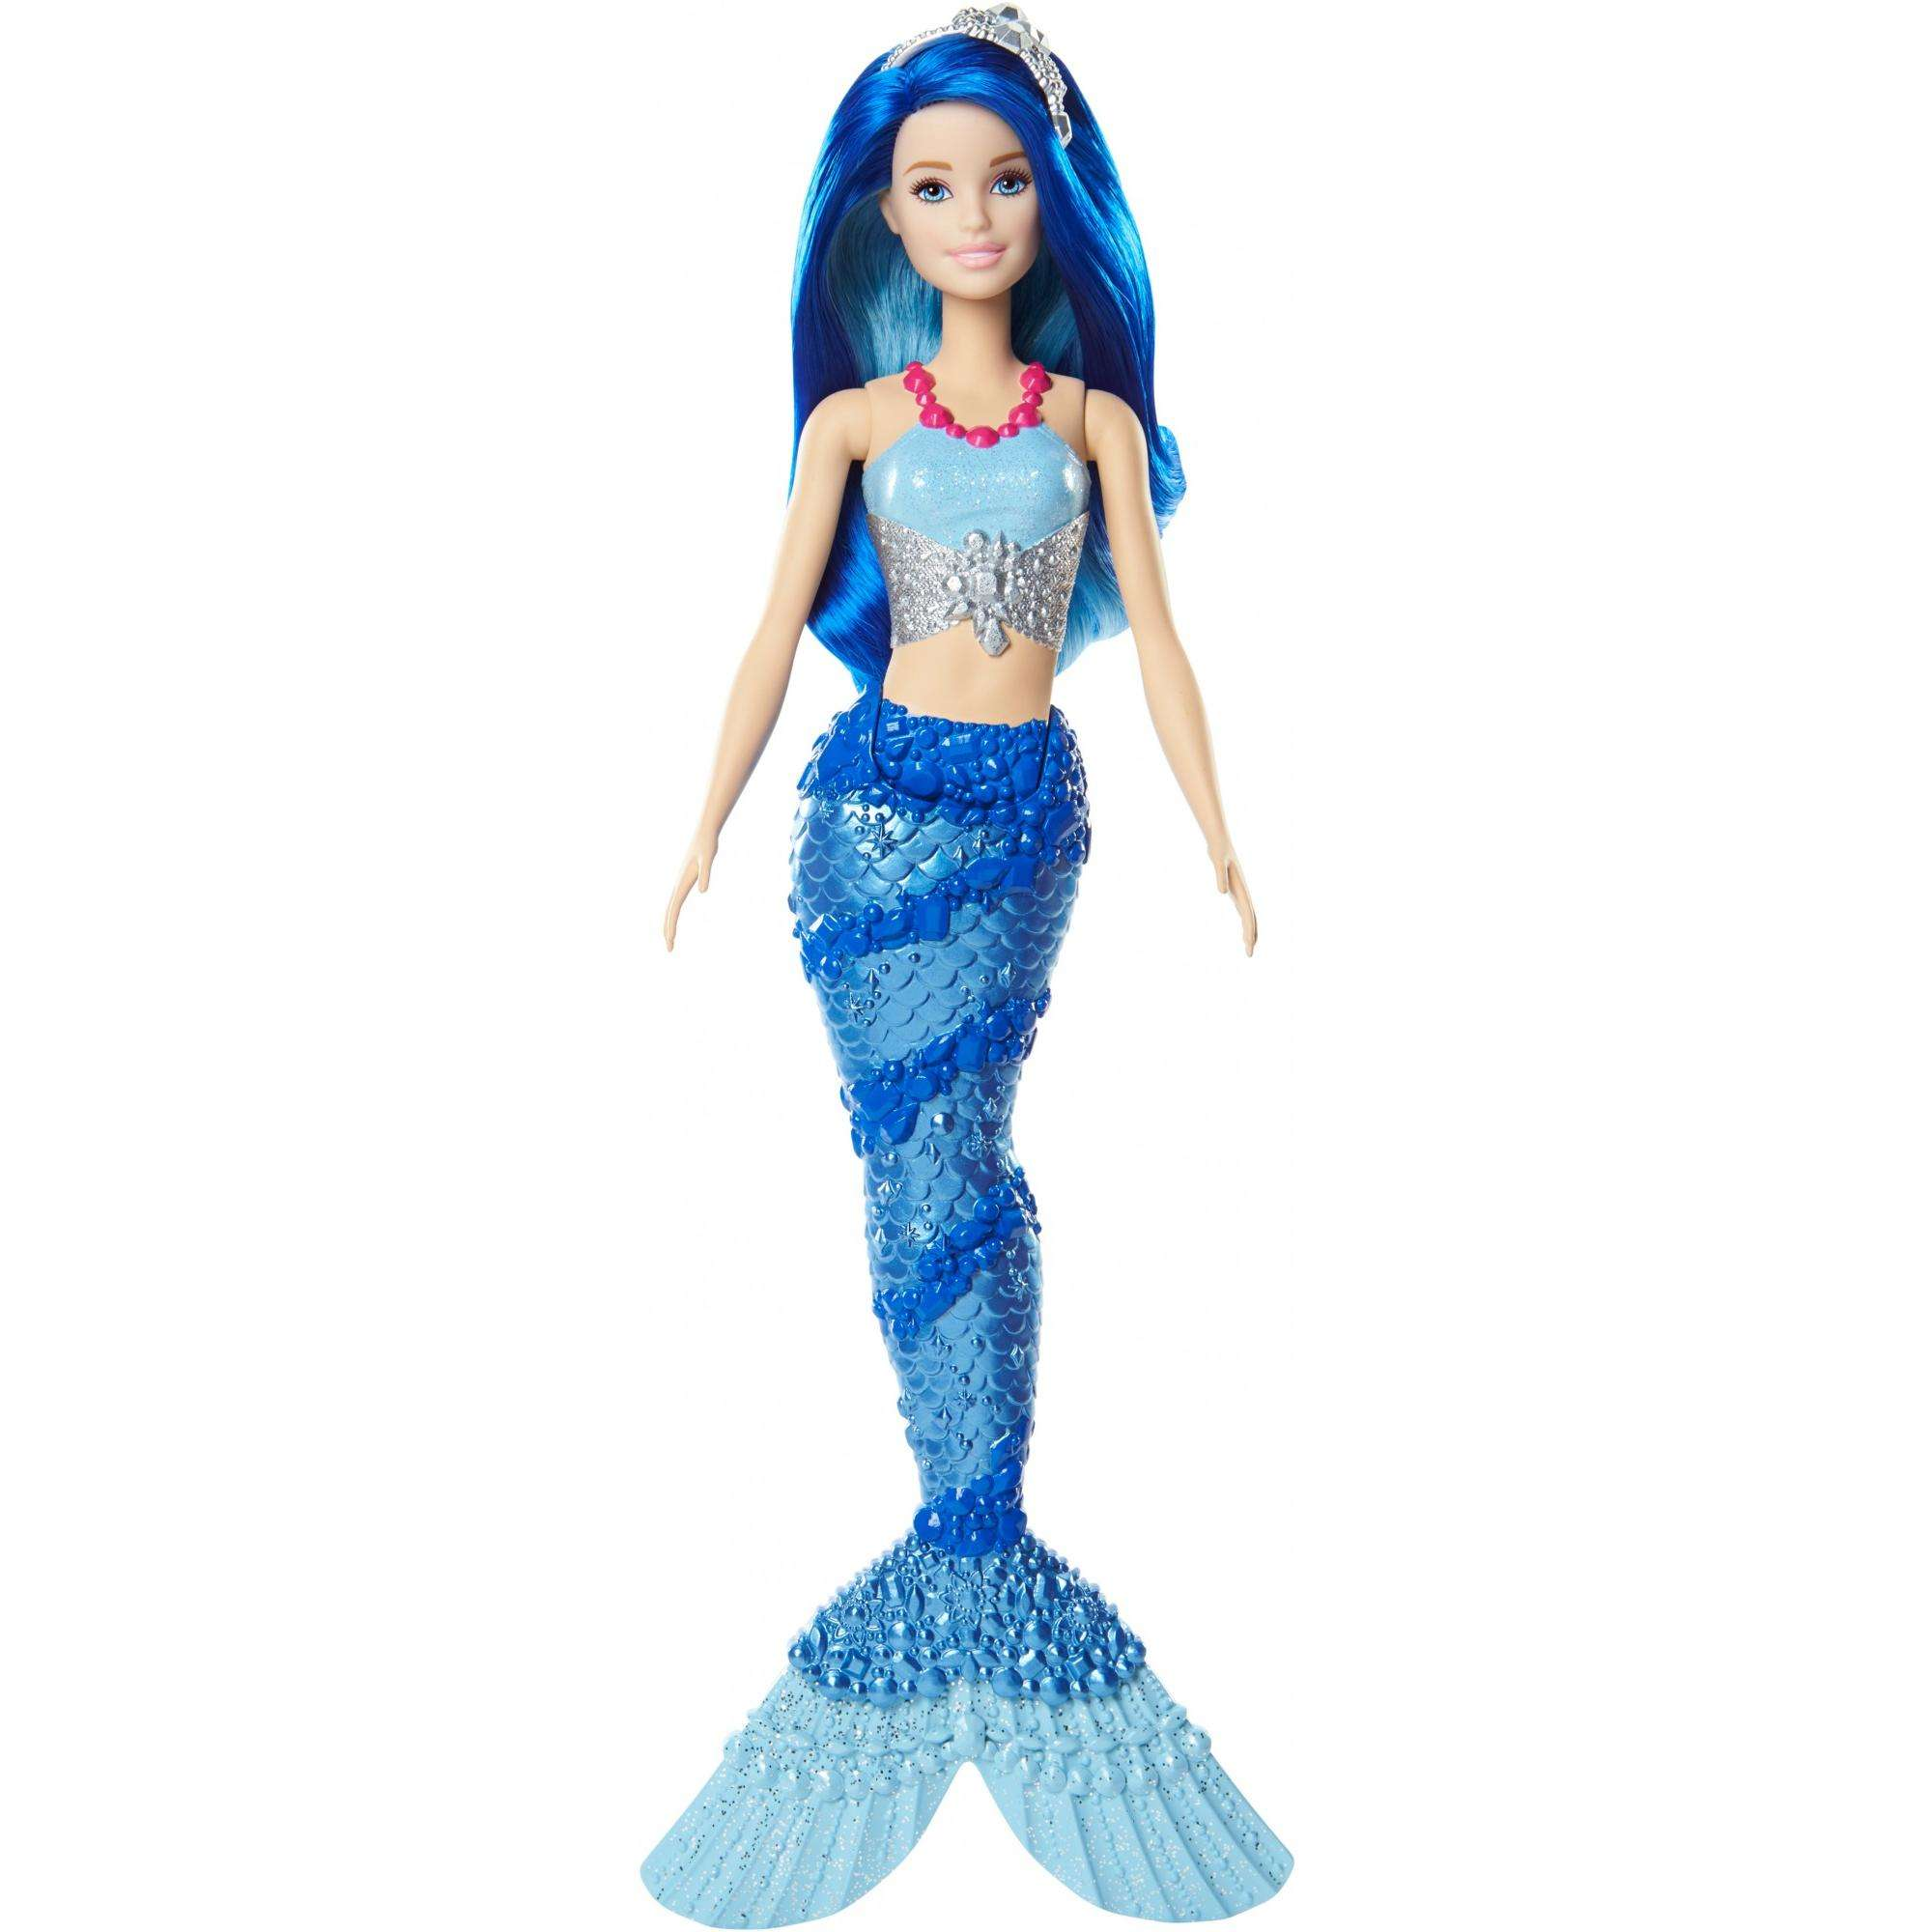 Barbie Dreamtopia Mermaid Doll, Blue by Mattel